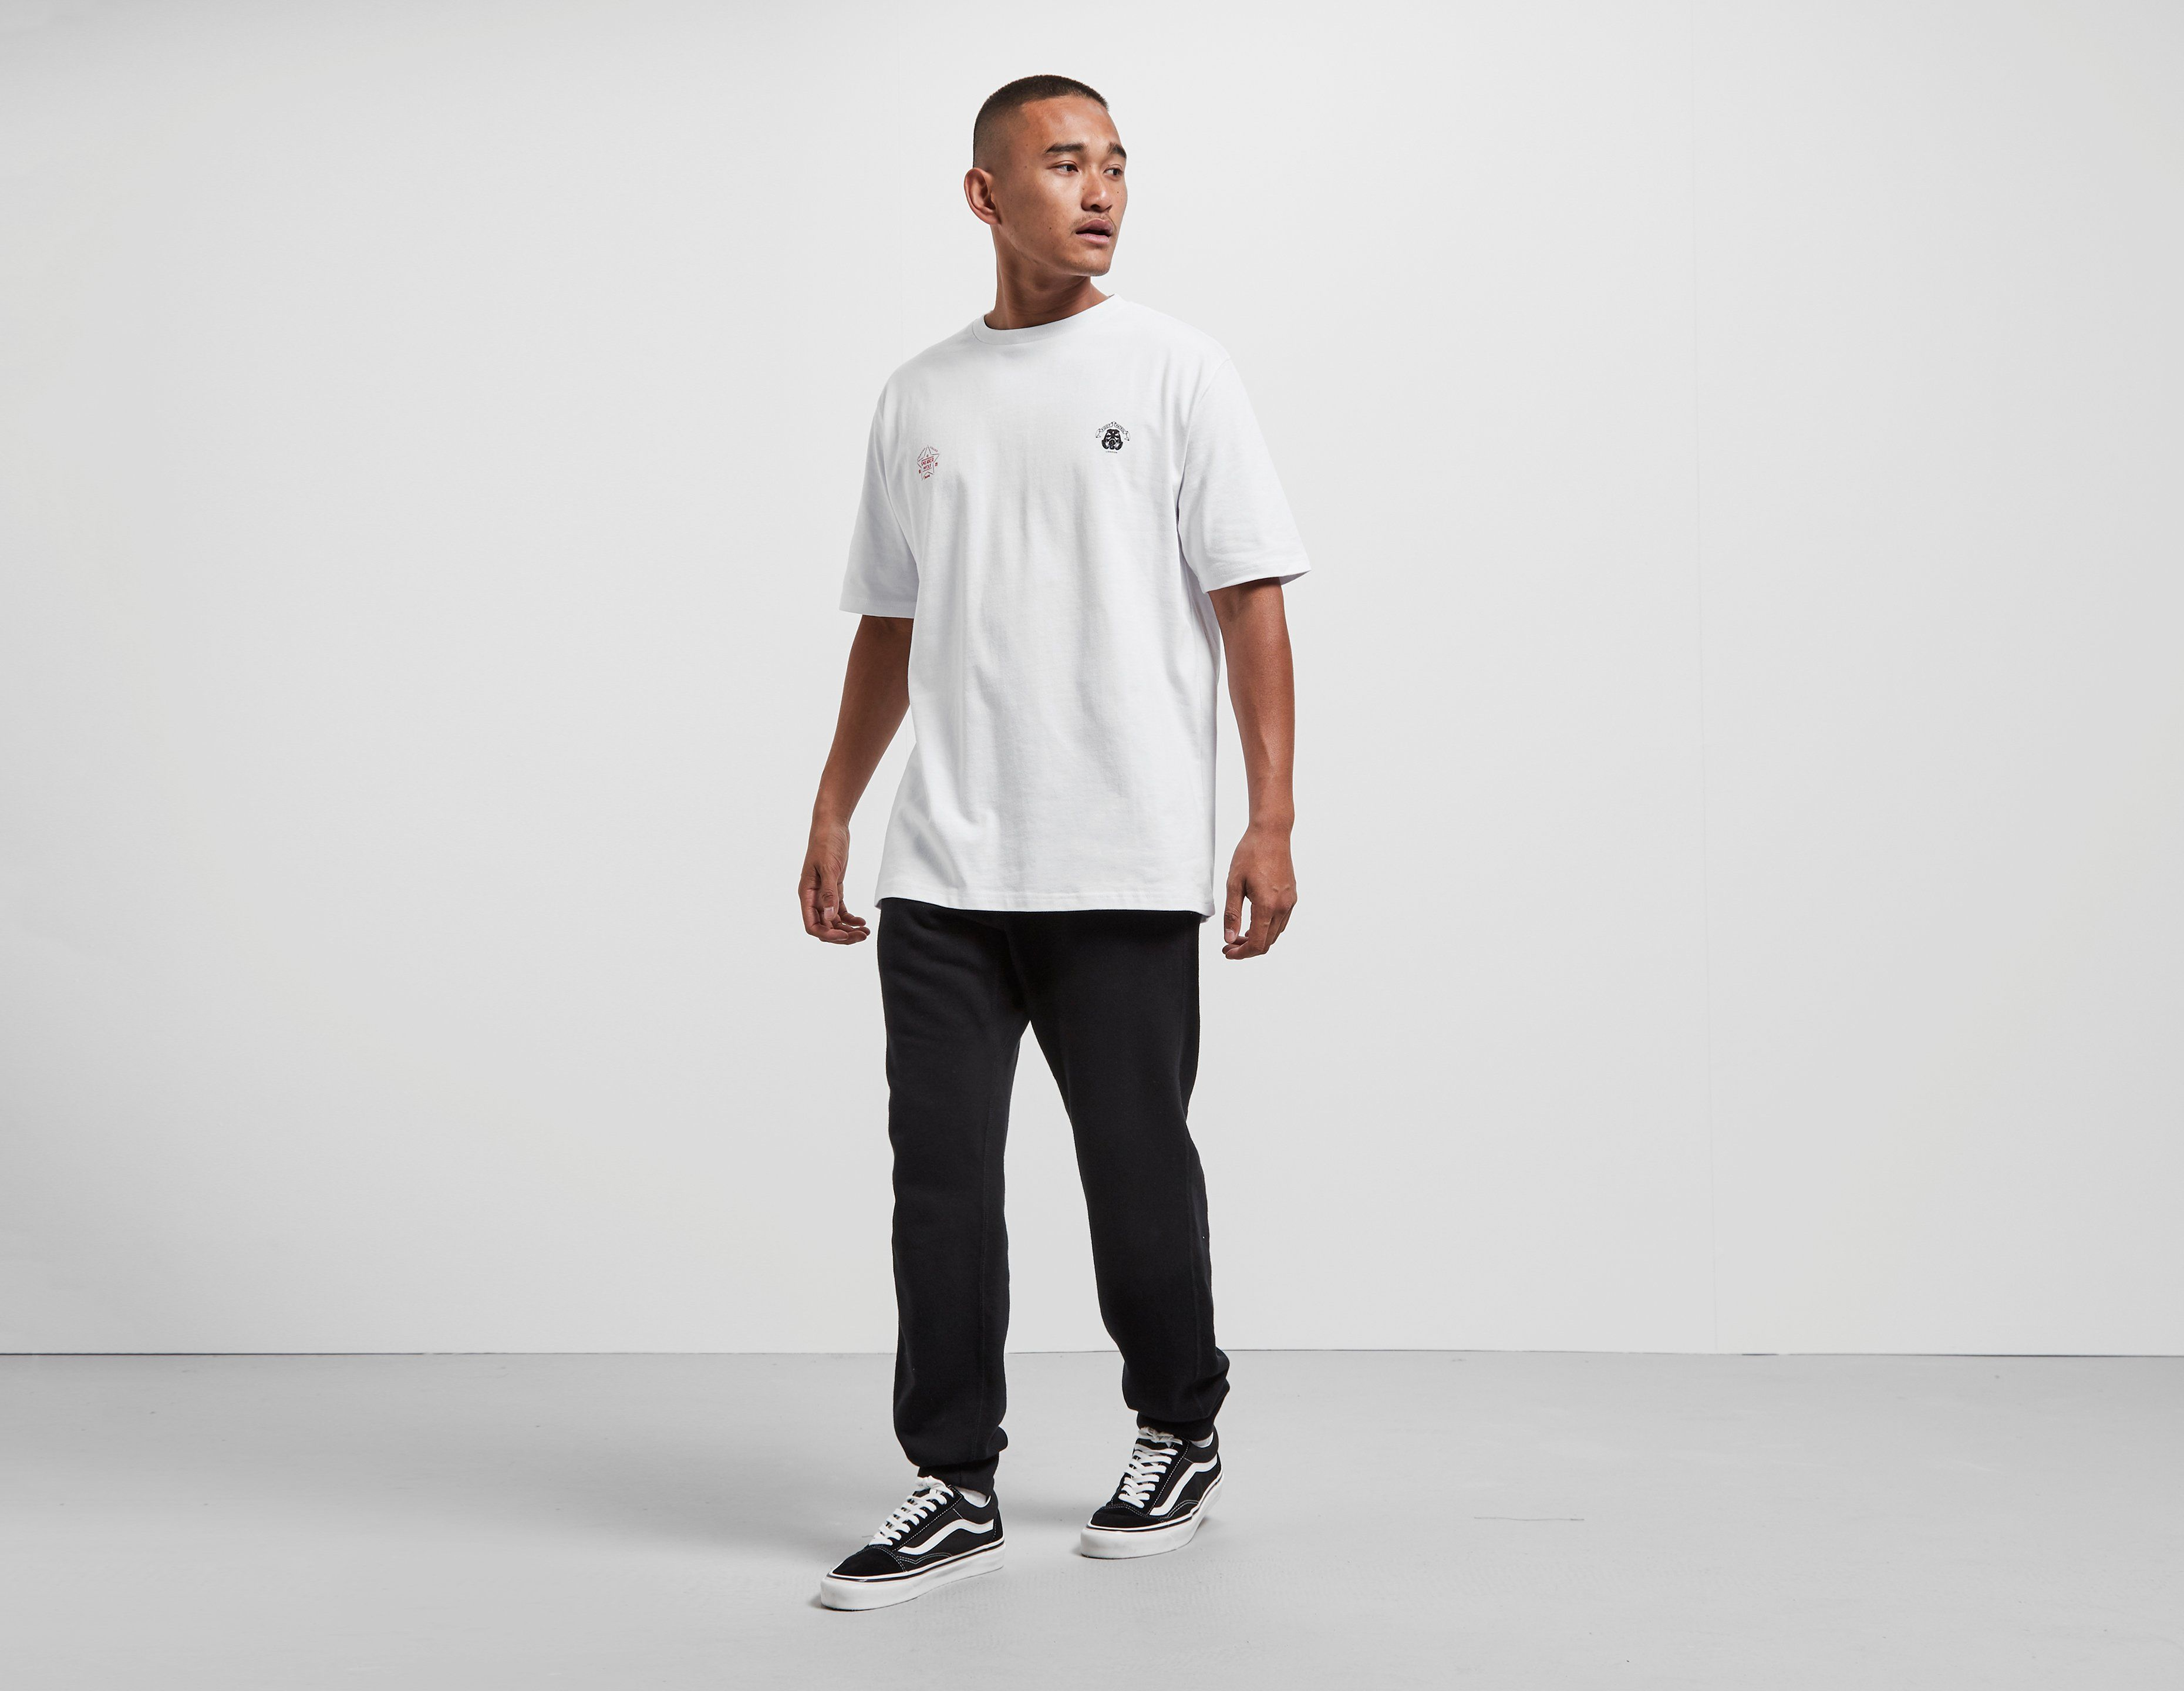 Footpatrol x Sneakerwolf T-Shirt 'Communi T'